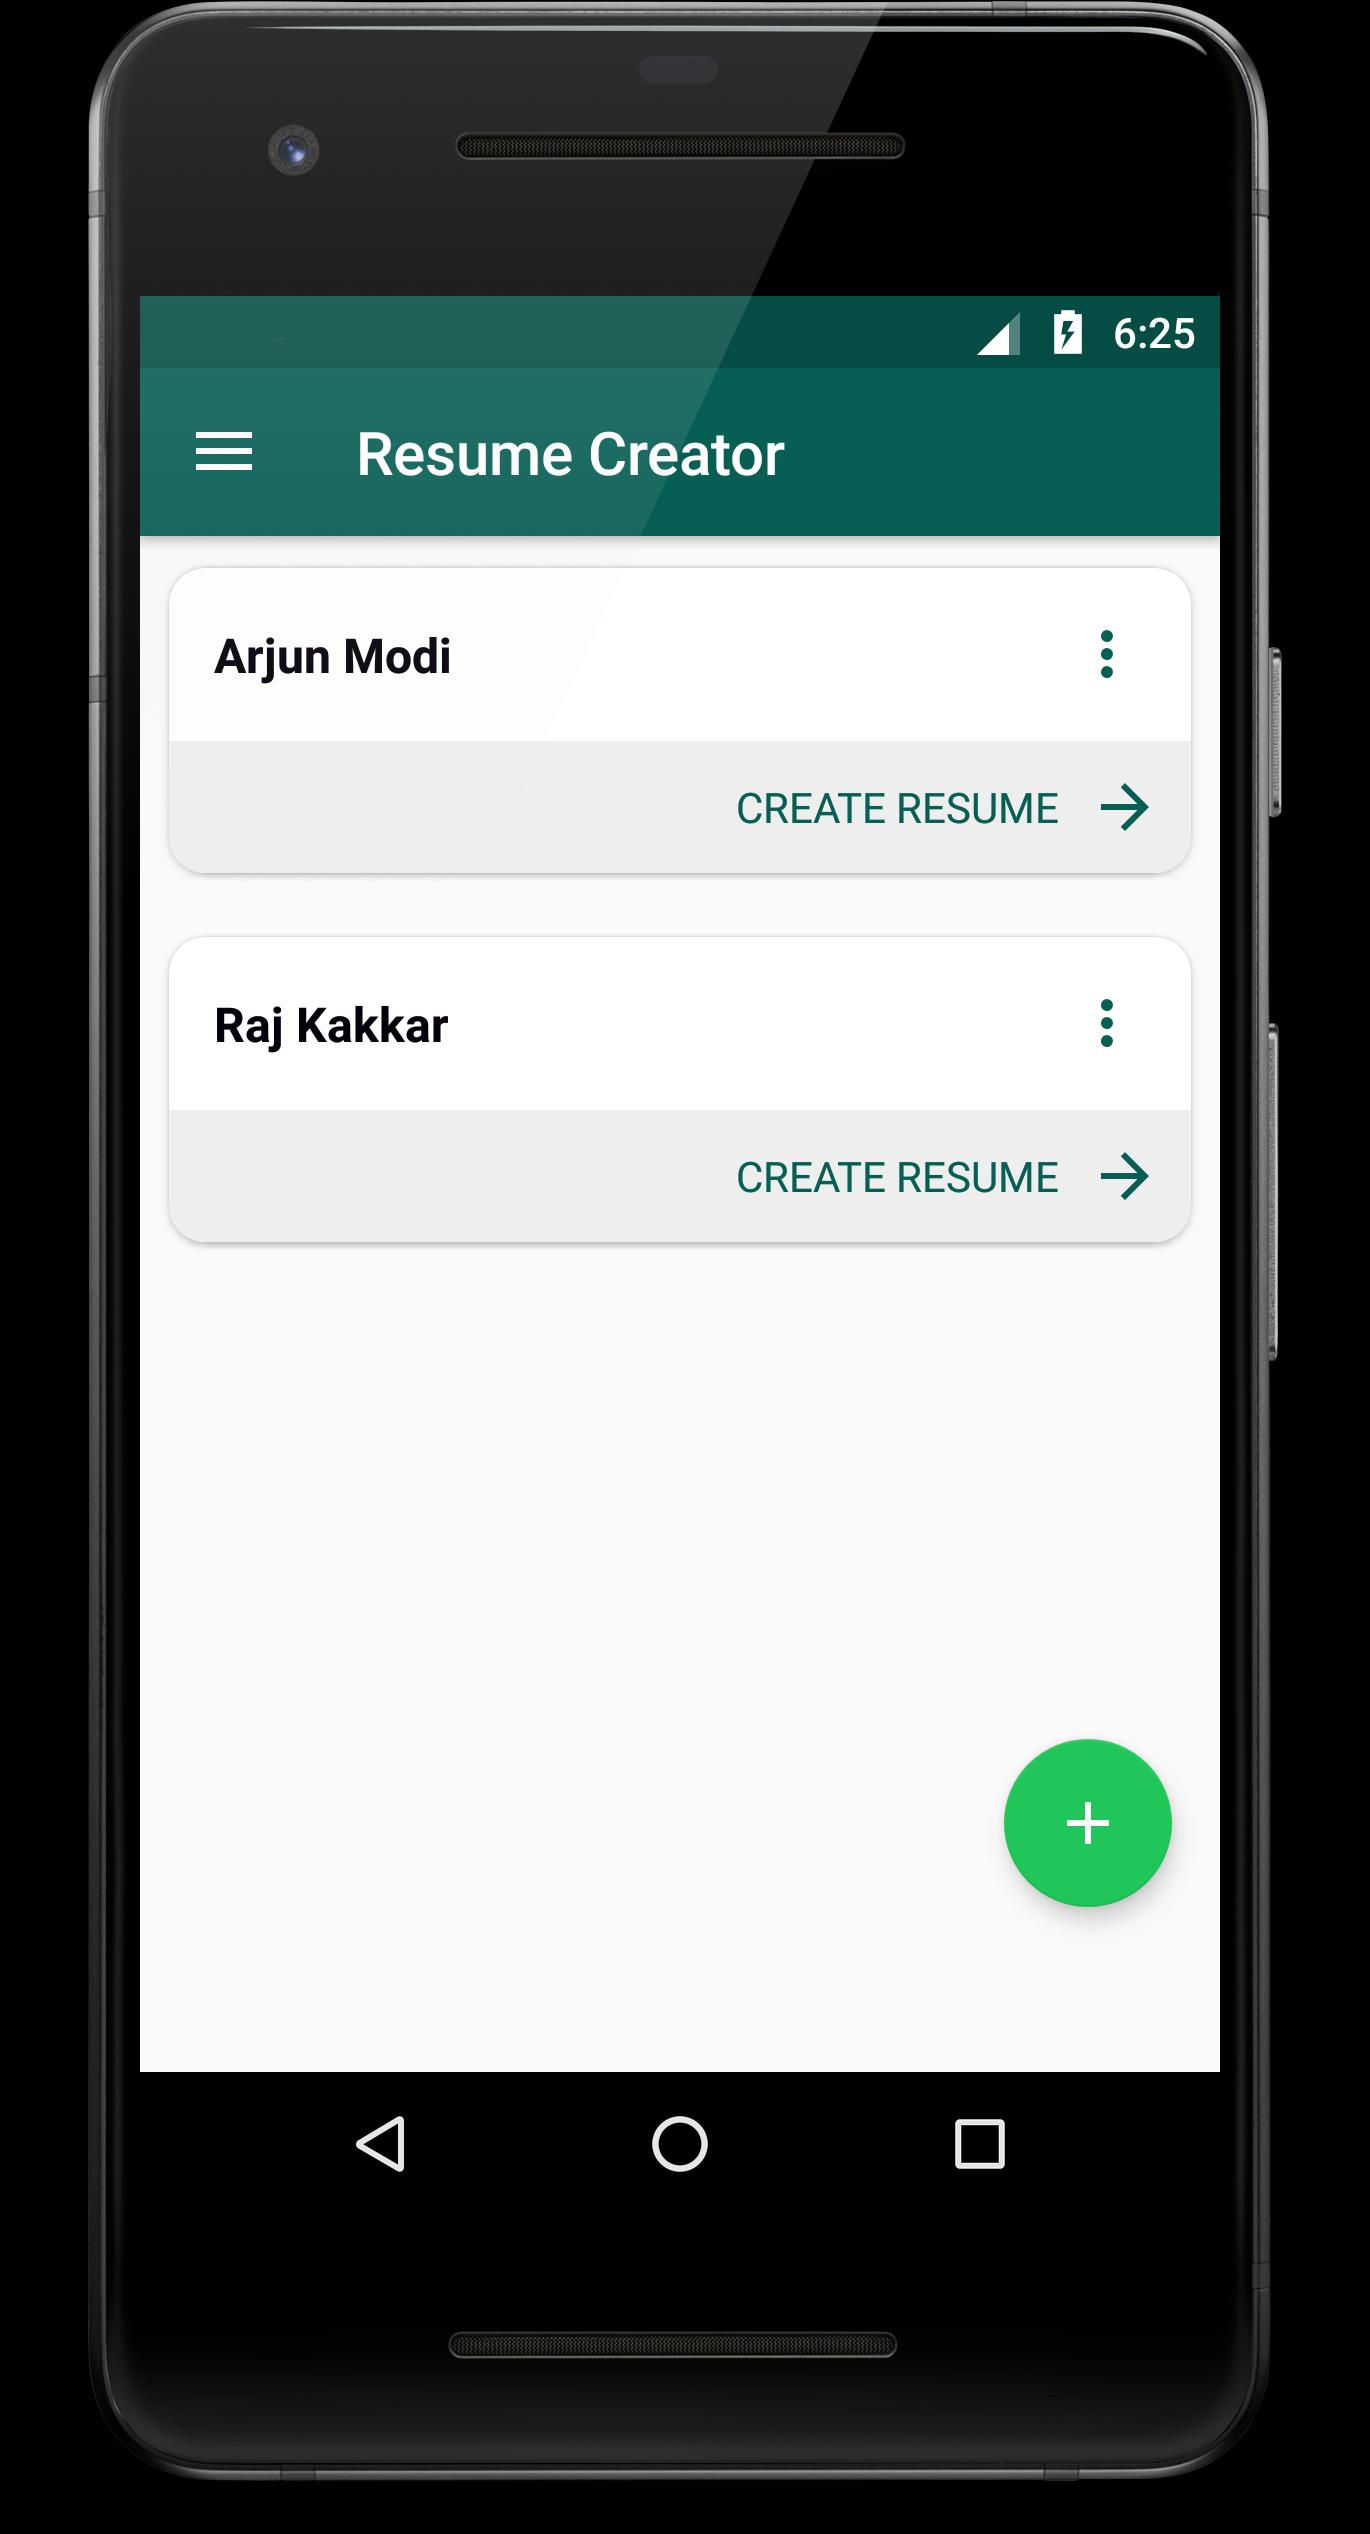 Resume Creator for Android - APK Download